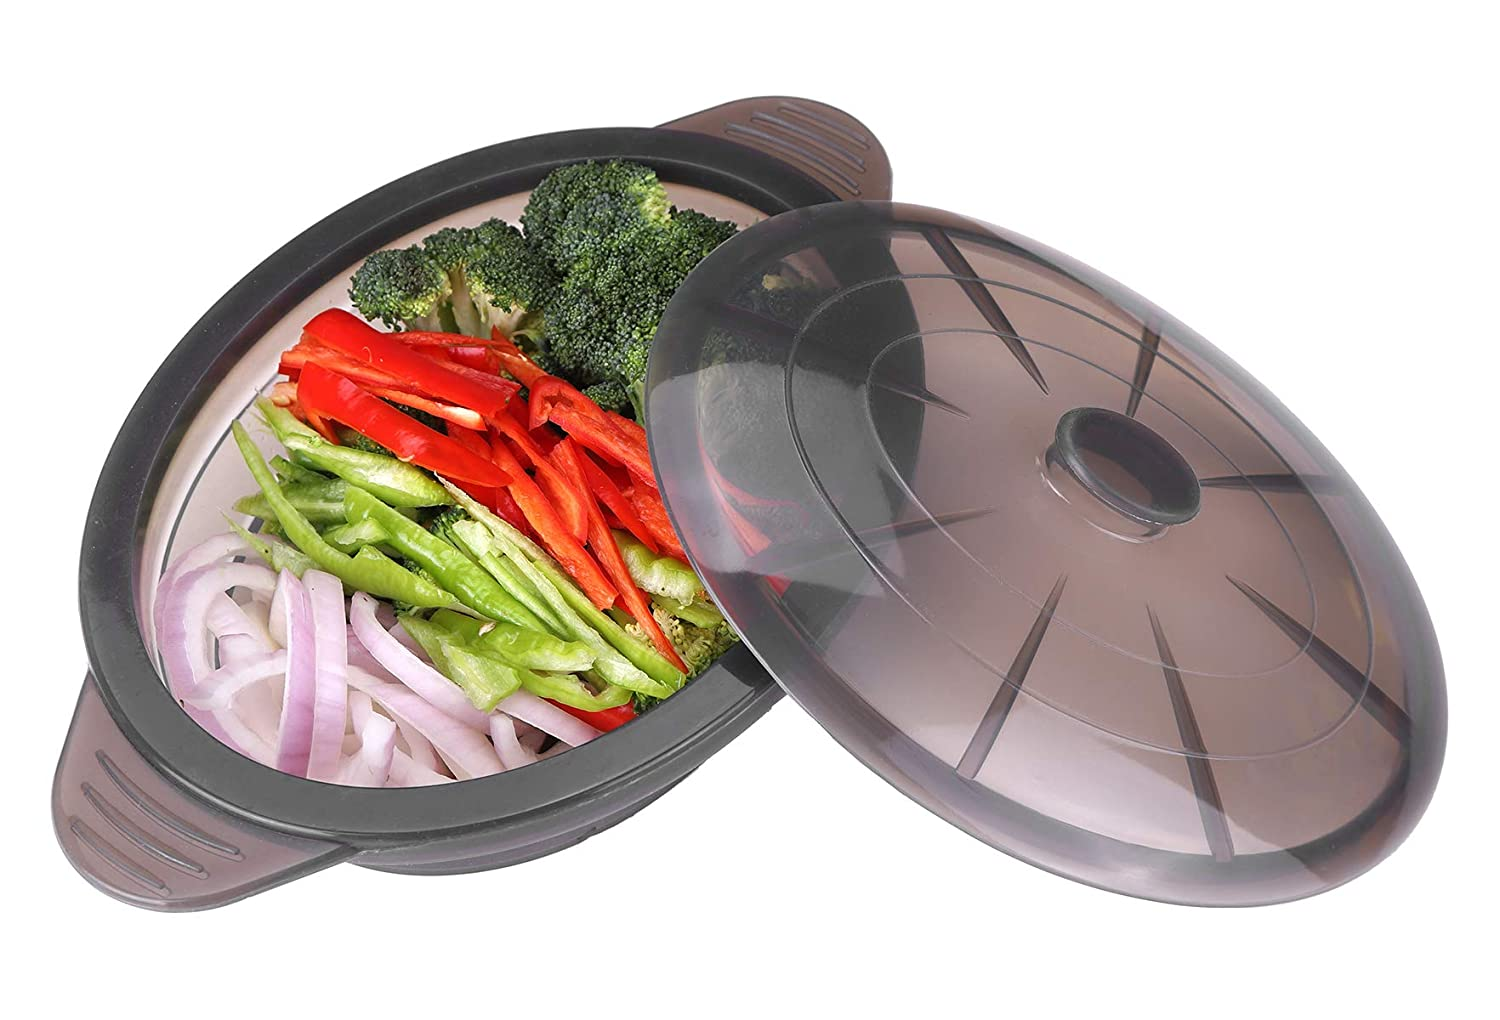 Microwave Steamer Collapsible Silicone Bowl-Silicone Steamer with Handle & Lid, Collapsible Design with Detachable Partition, 480 °F heat resistant and resistant to kinking, BPA Free, Dishwasher Safe